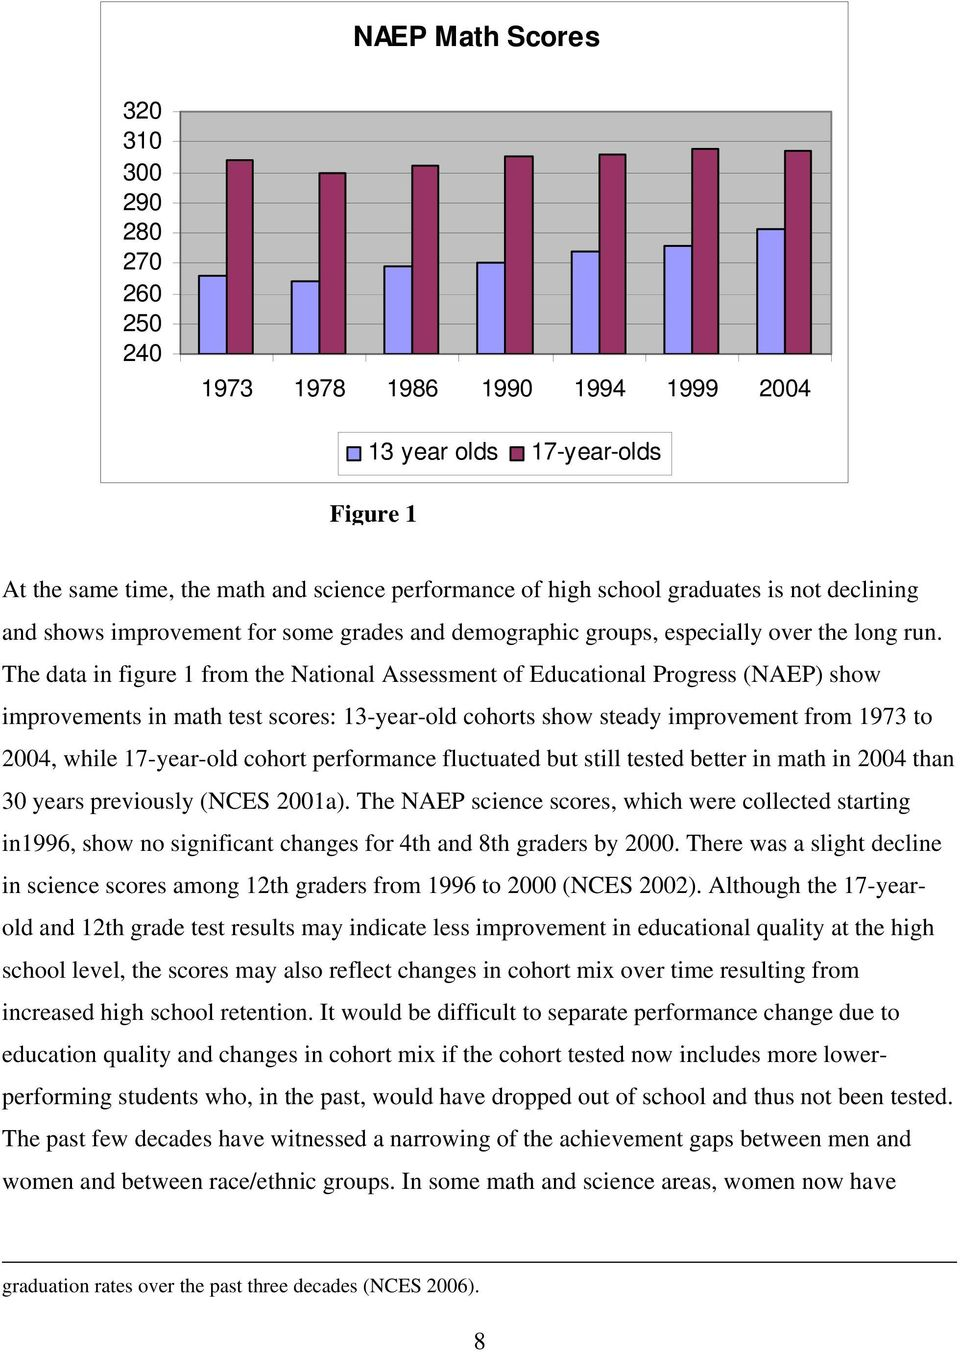 The data in figure 1 from the National Assessment of Educational Progress (NAEP) show improvements in math test scores: 13-year-old cohorts show steady improvement from 1973 to 2004, while